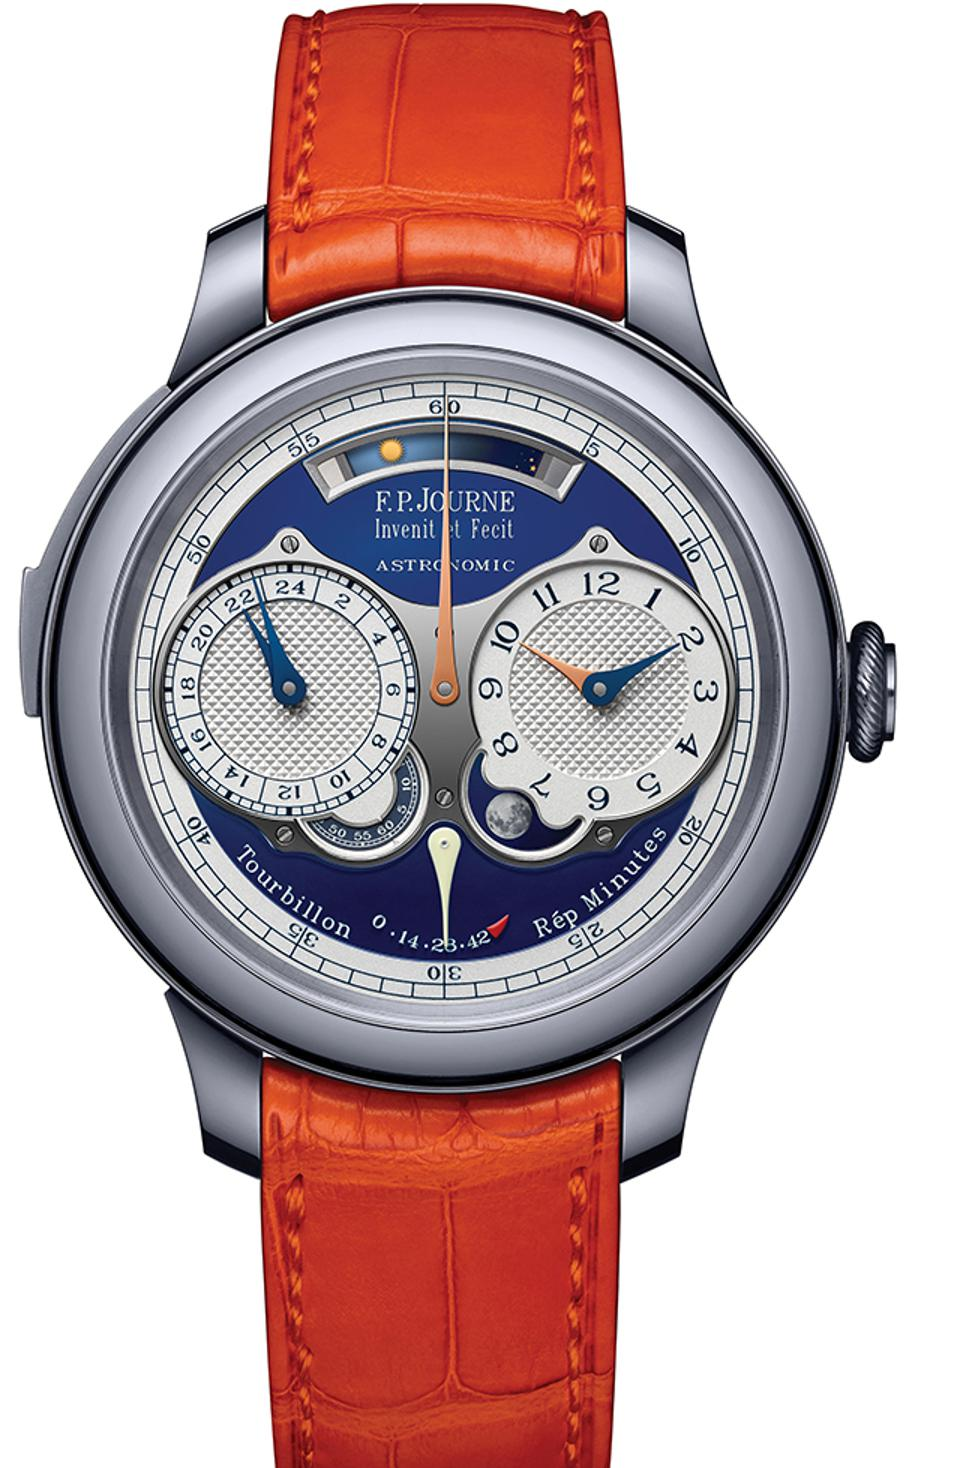 The F.P. Journe Astronomic Blue sold for CHF 1.8-million.